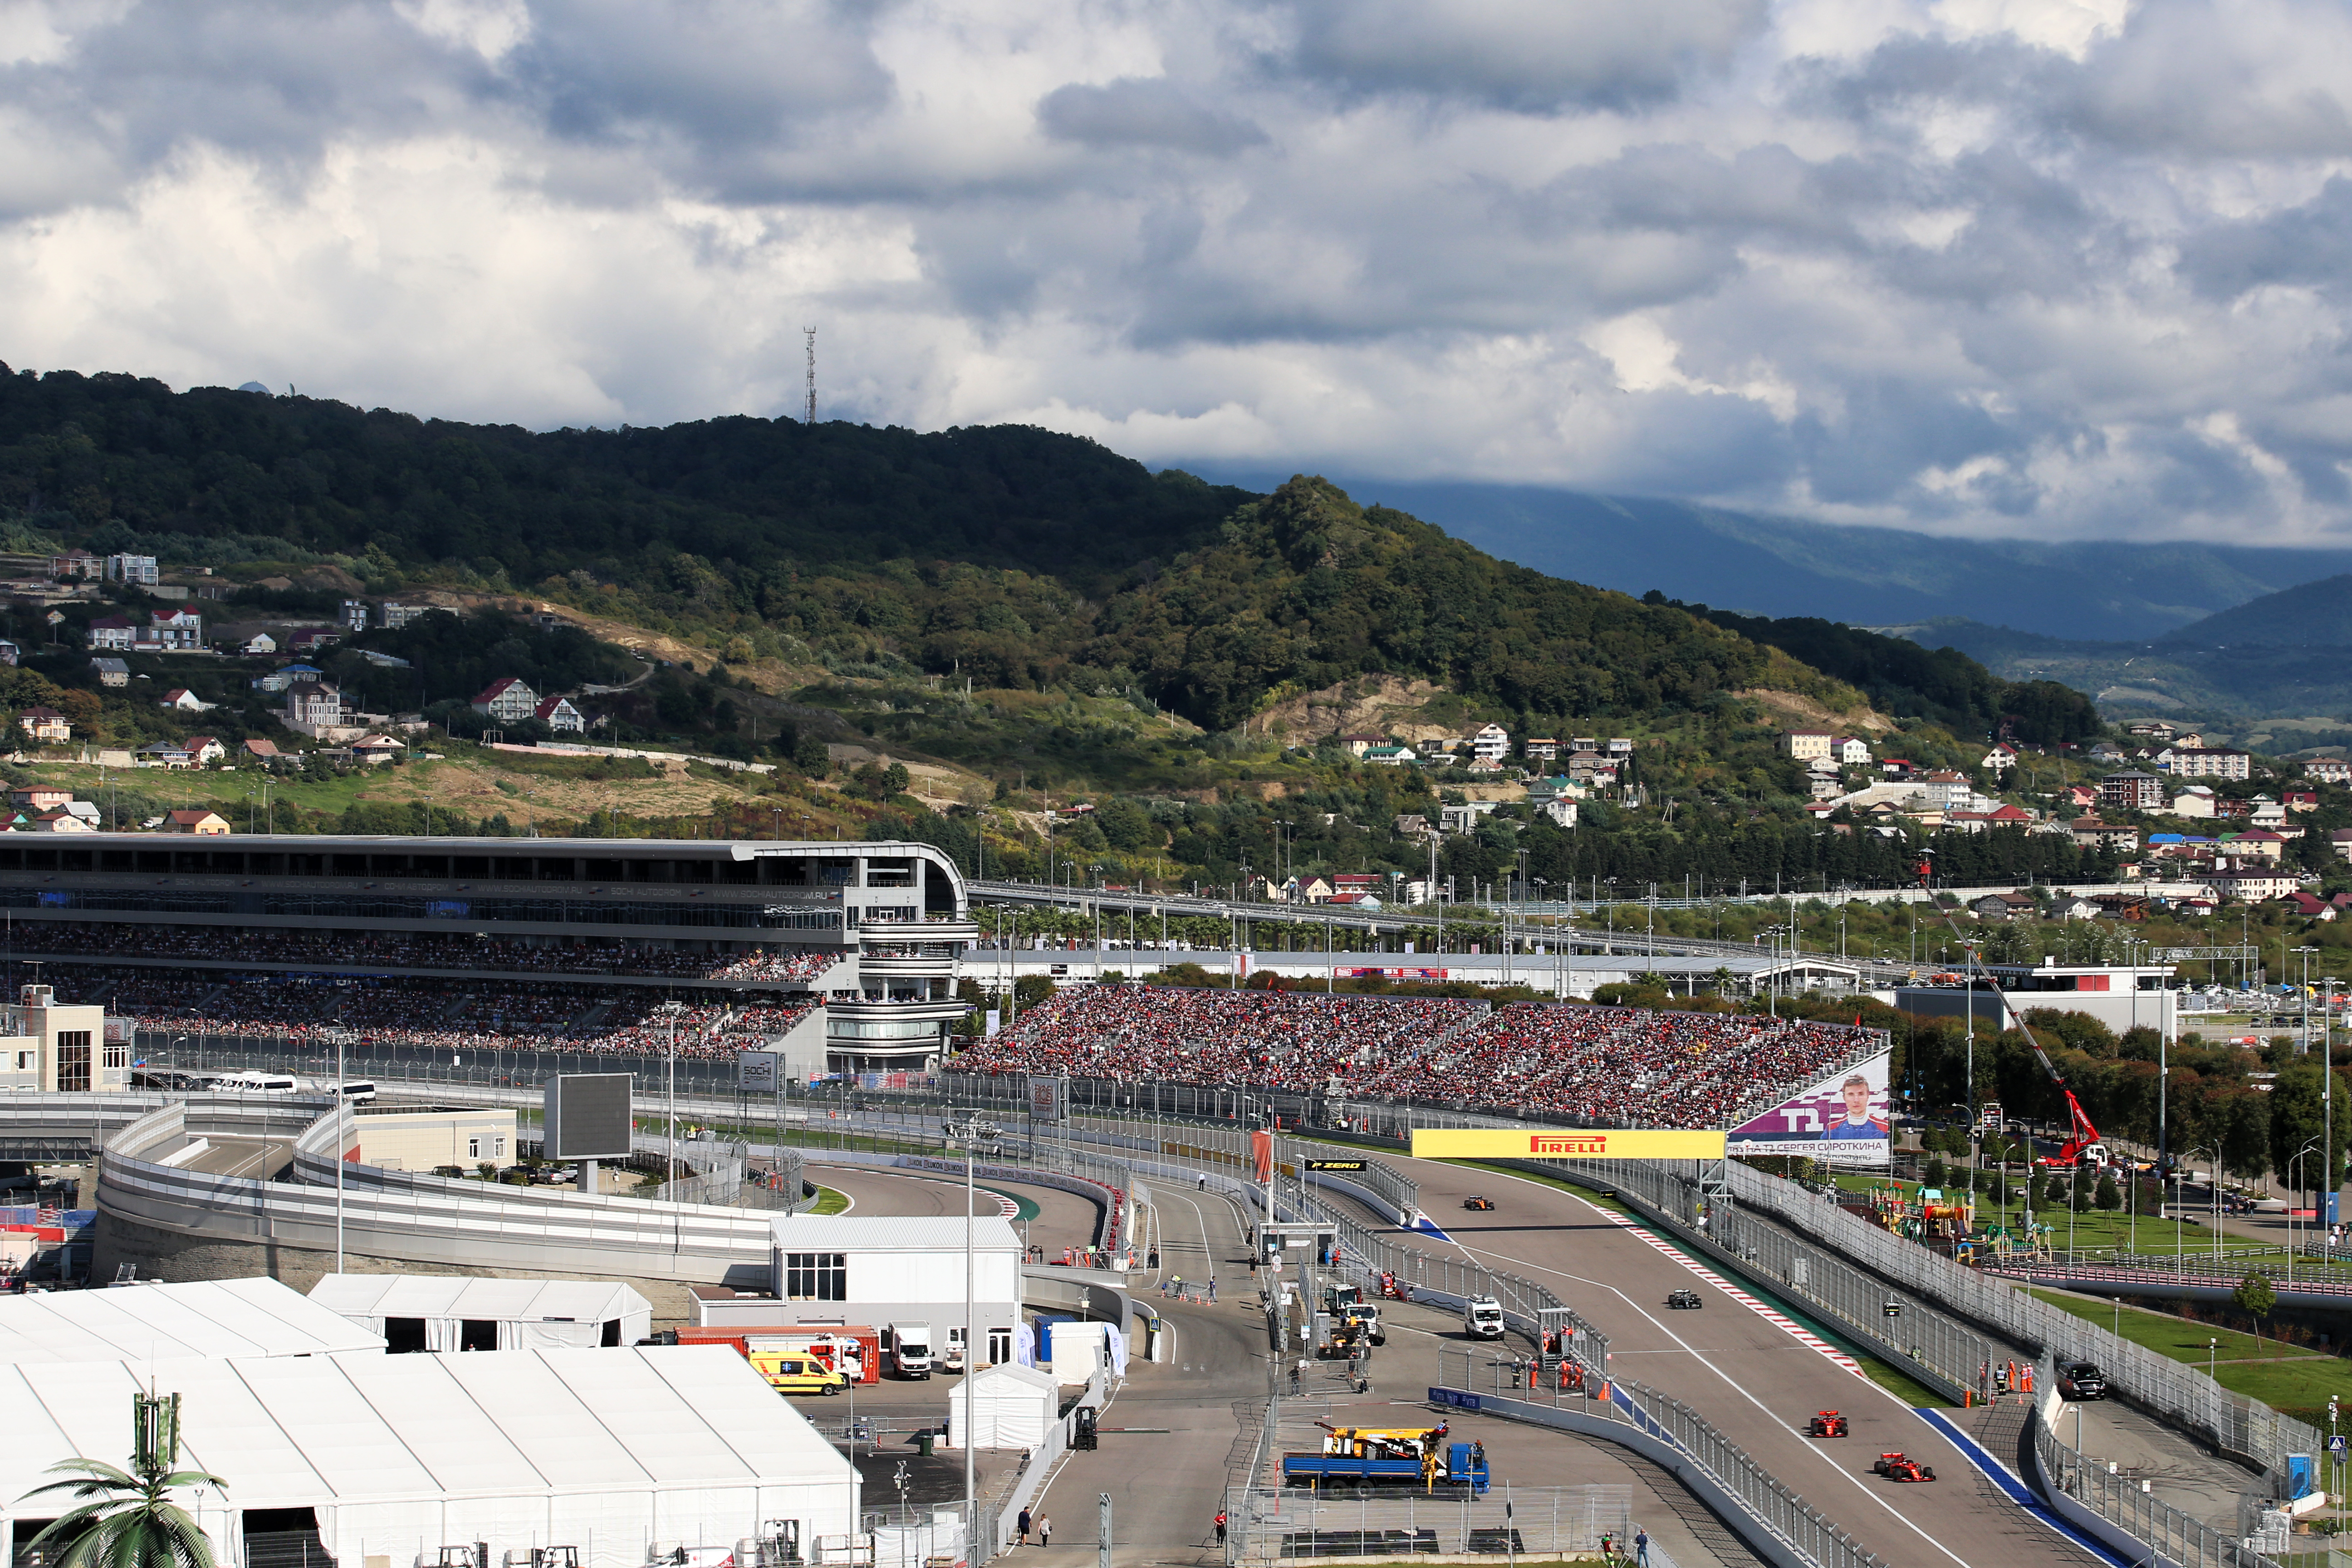 Motor Racing Formula One World Championship Russian Grand Prix Race Day Sochi, Russia